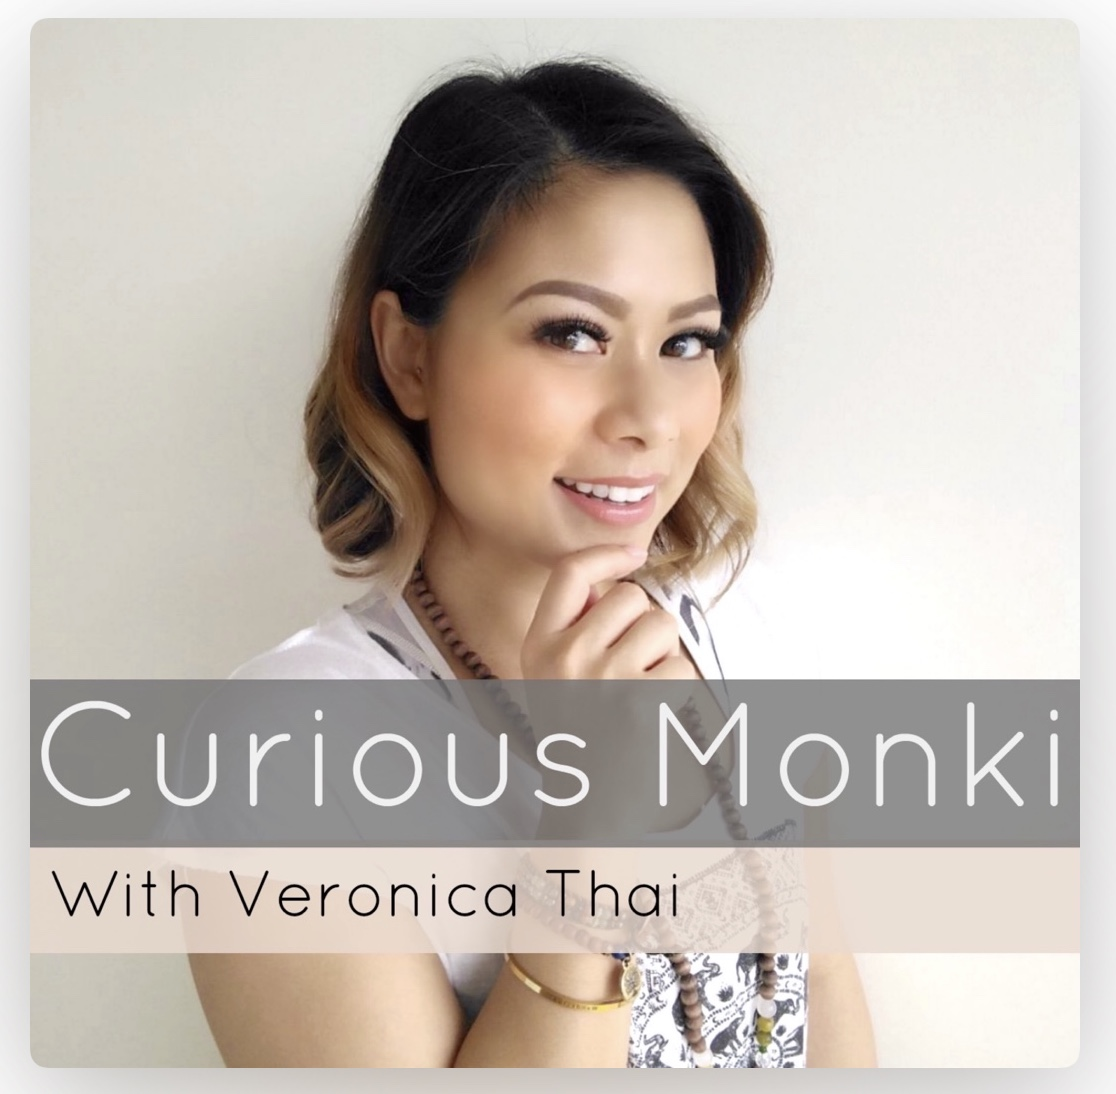 https://itunes.apple.com/ca/podcast/curious-monki-yoga-spirituality-wellness/id1173731973?mt=2